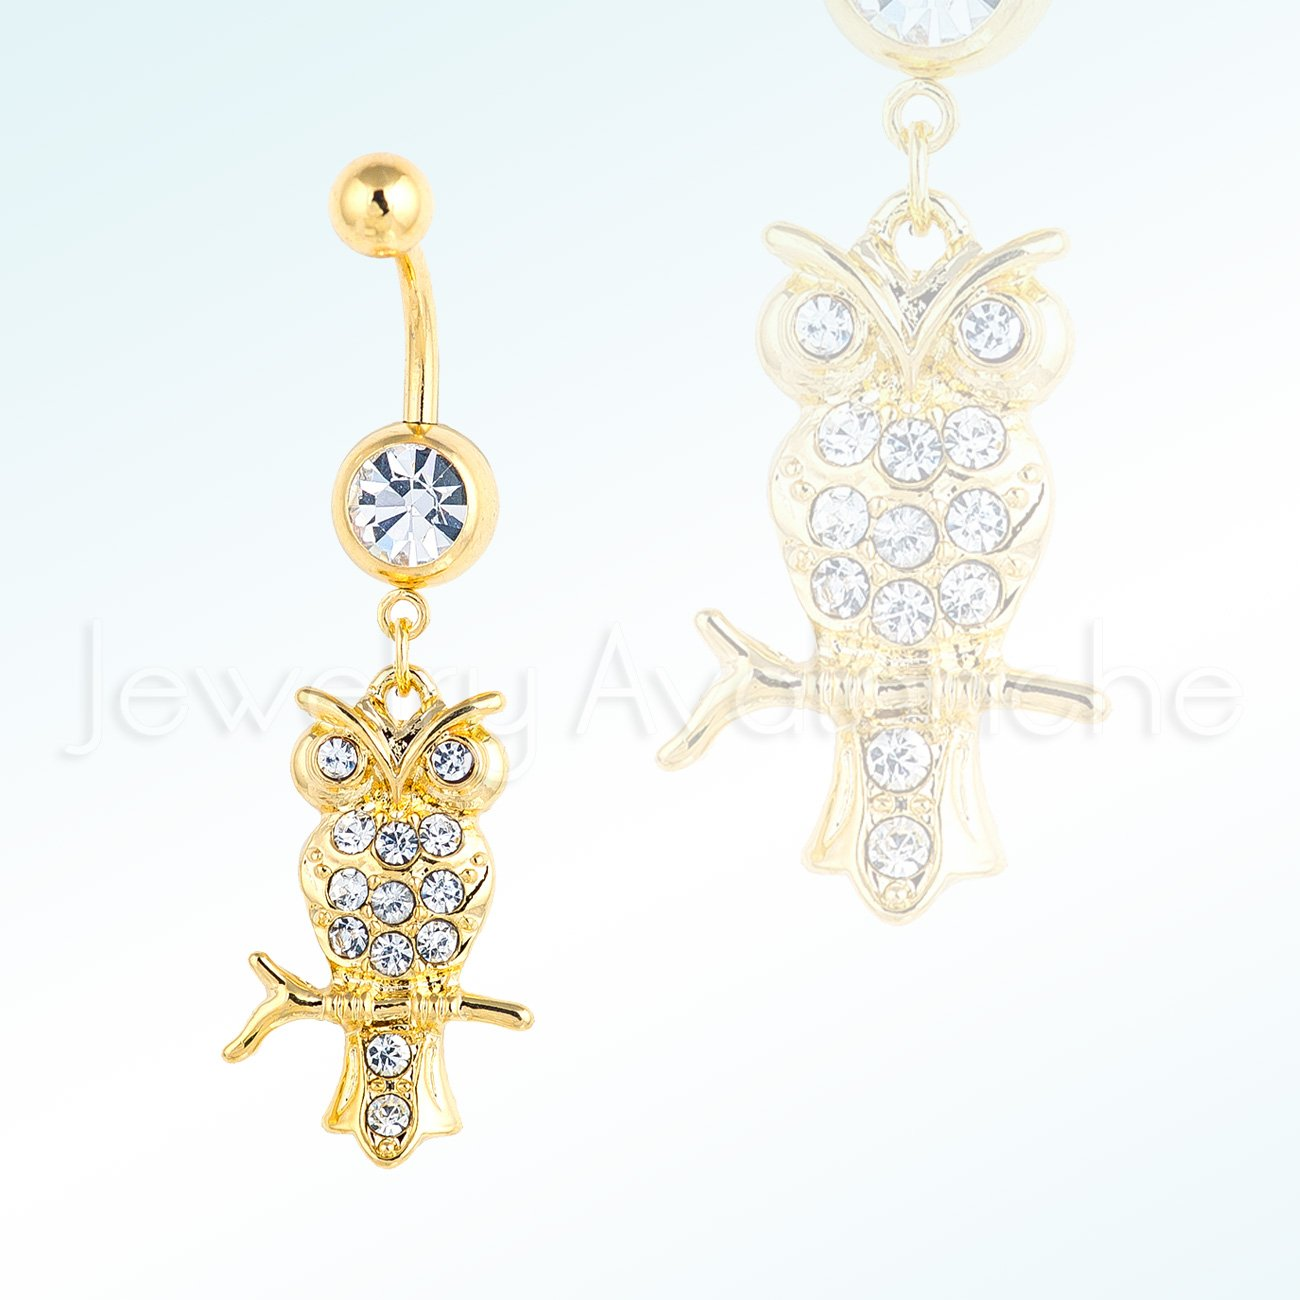 Silver OWL w/ CZ Belly Ring, Polished Screw-on 14G Banana Barbel 316L Surgical Steel Navel Ring - Yellow